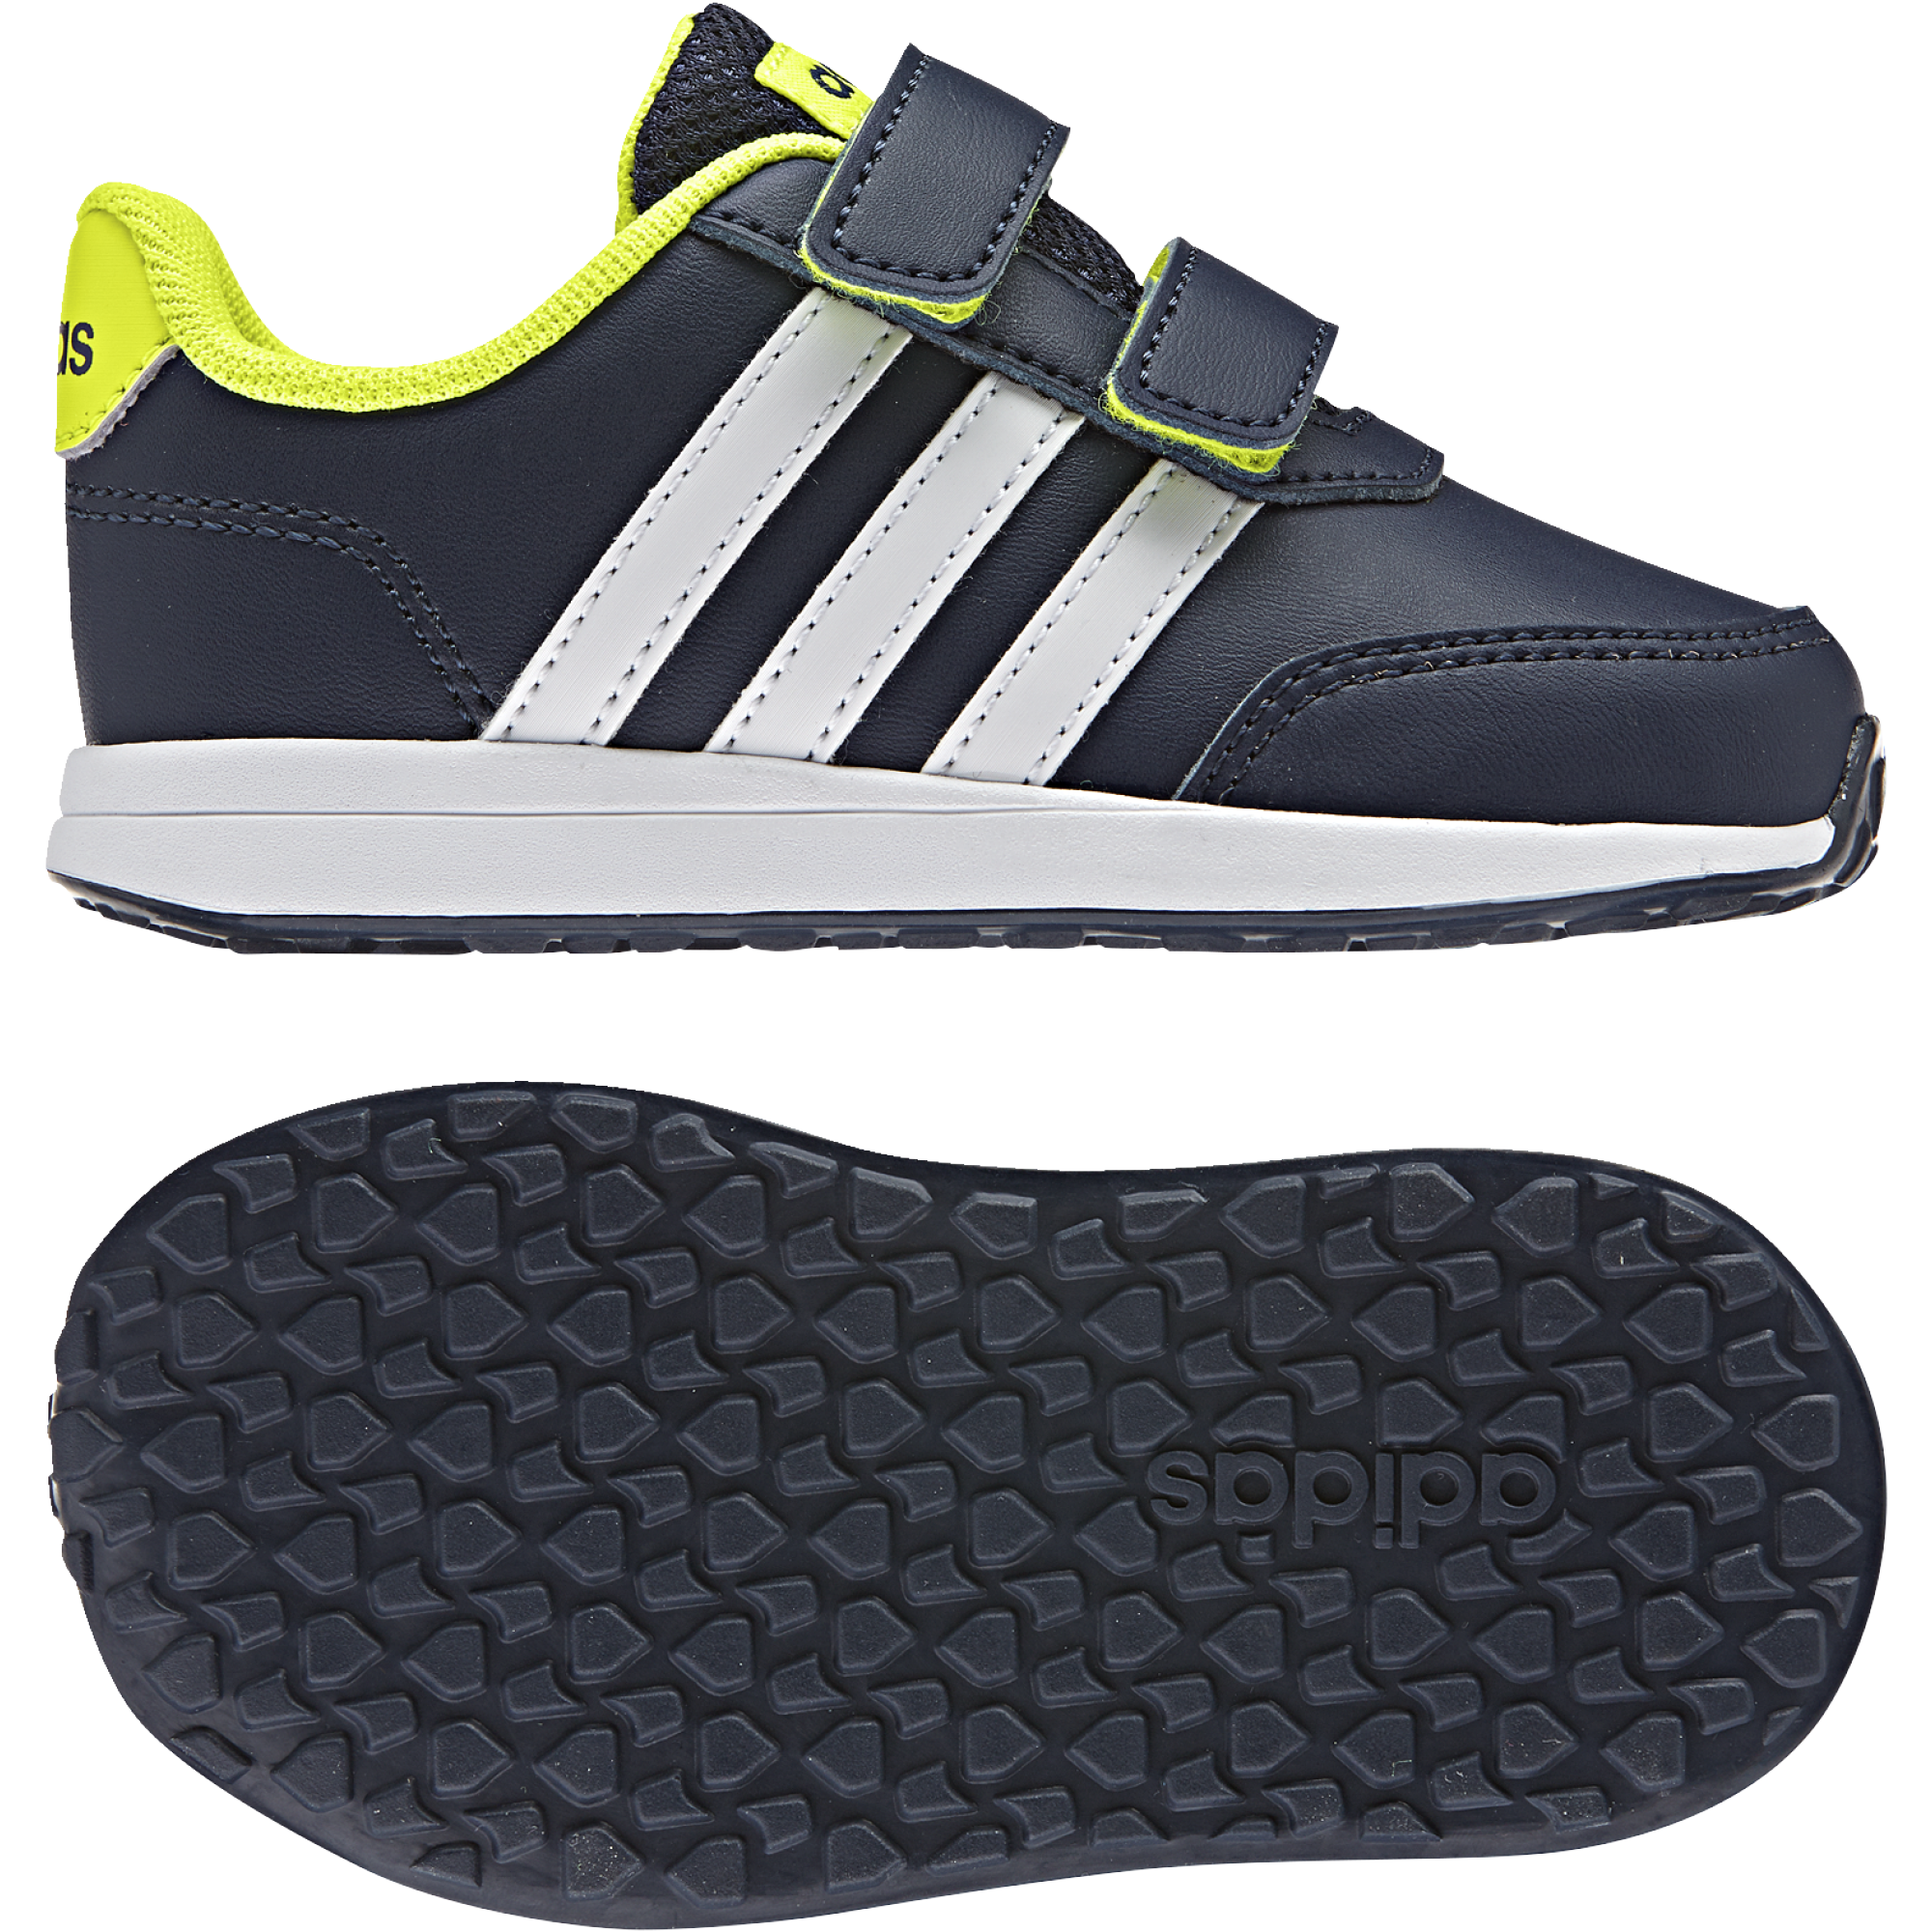 Adidas Switch 2.0 K bébi utcai cipő  6ab999be97